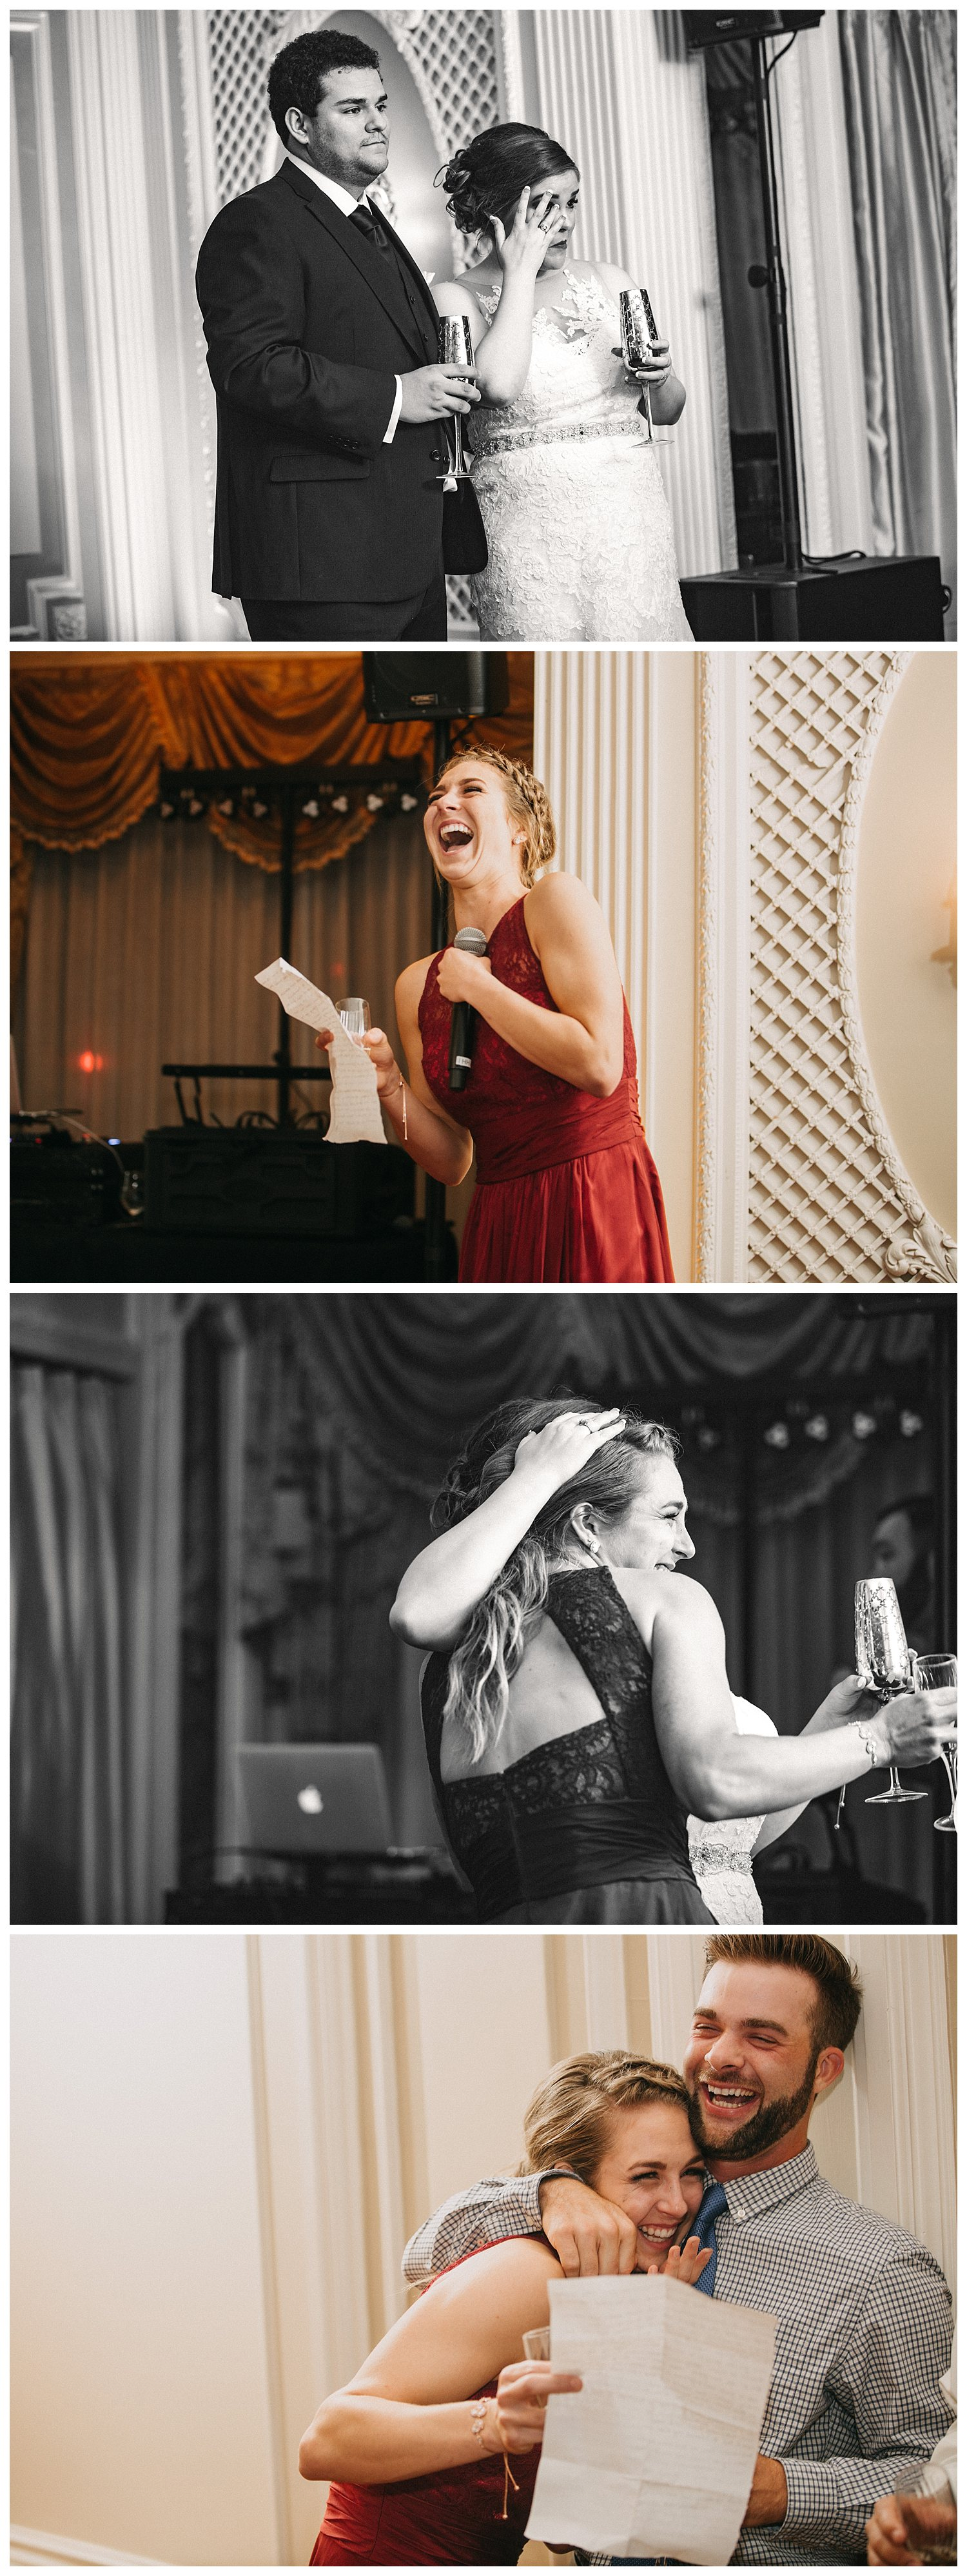 Kelsey_Diane_Photography_Loose_Mansion_Wedding_Photography_Kansas_City_Victor_Lyndsay_0164.jpg